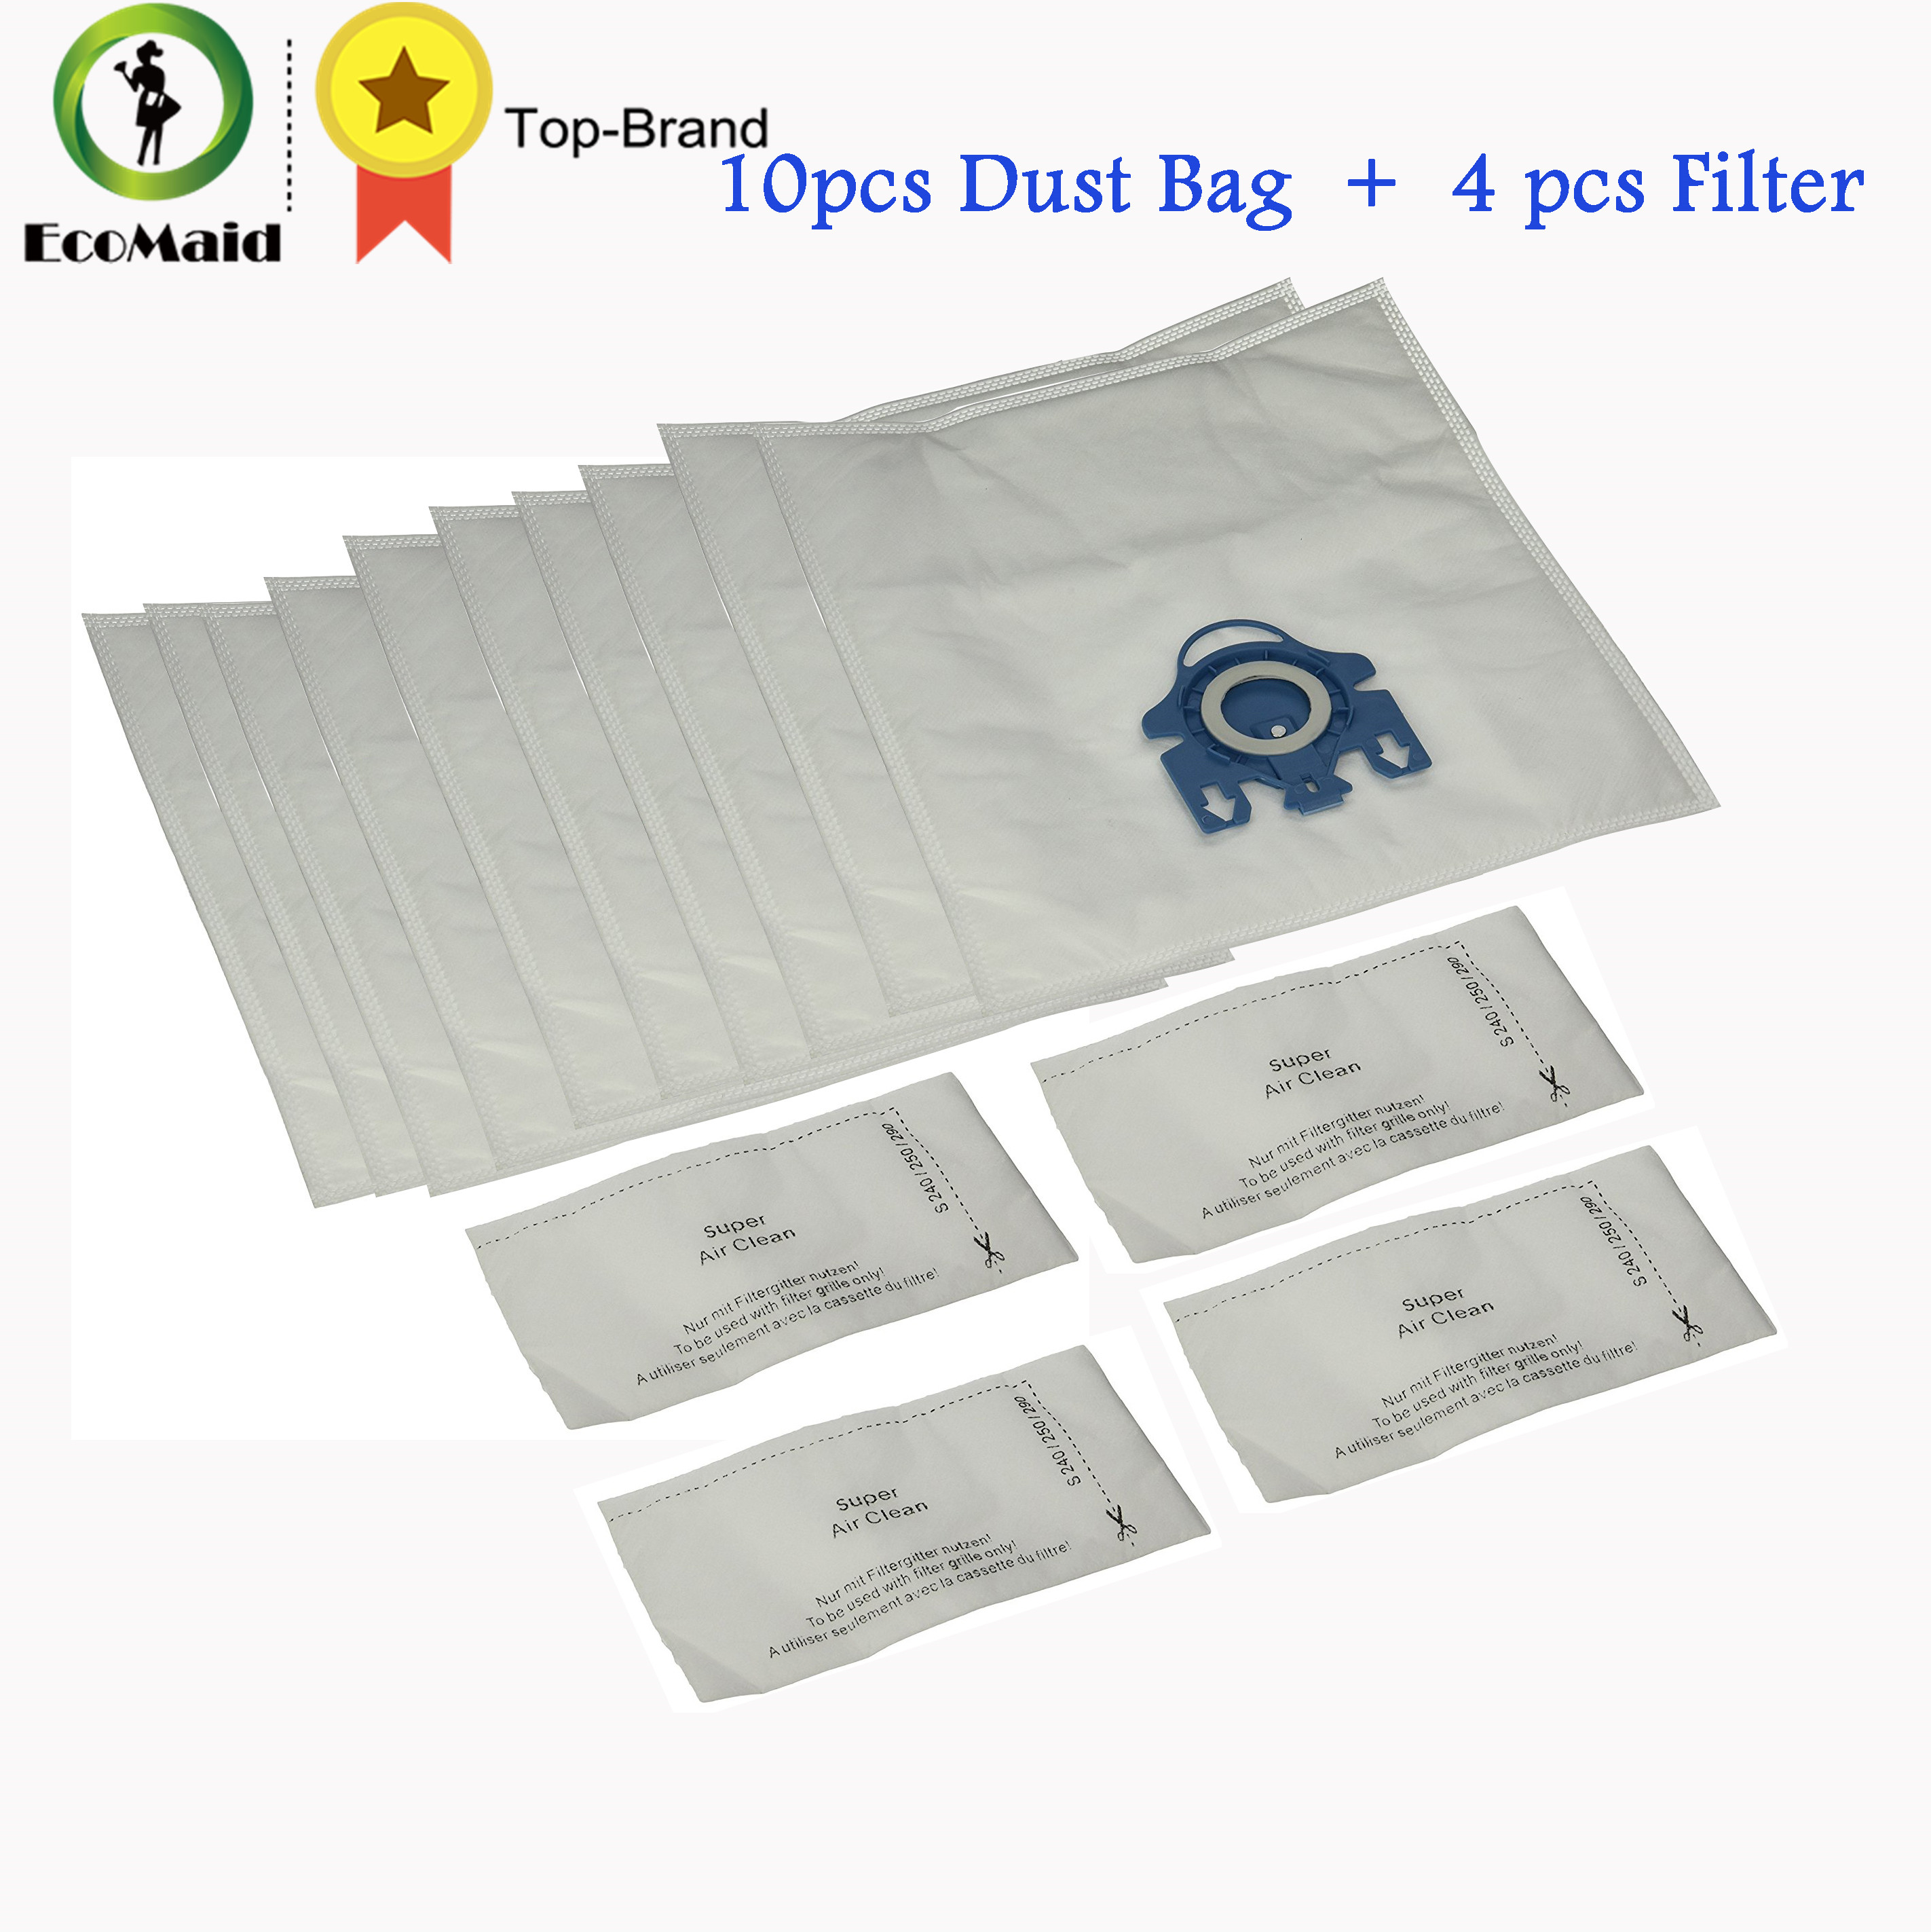 Dust Bag for Miele Vacuum Cleaner GN Type Vacuum Rubbish Bag Hoover Cat Dog Dust Bag Filter 10pcs + 4 Filters оправа boss orange boss orange bo456dmuae36